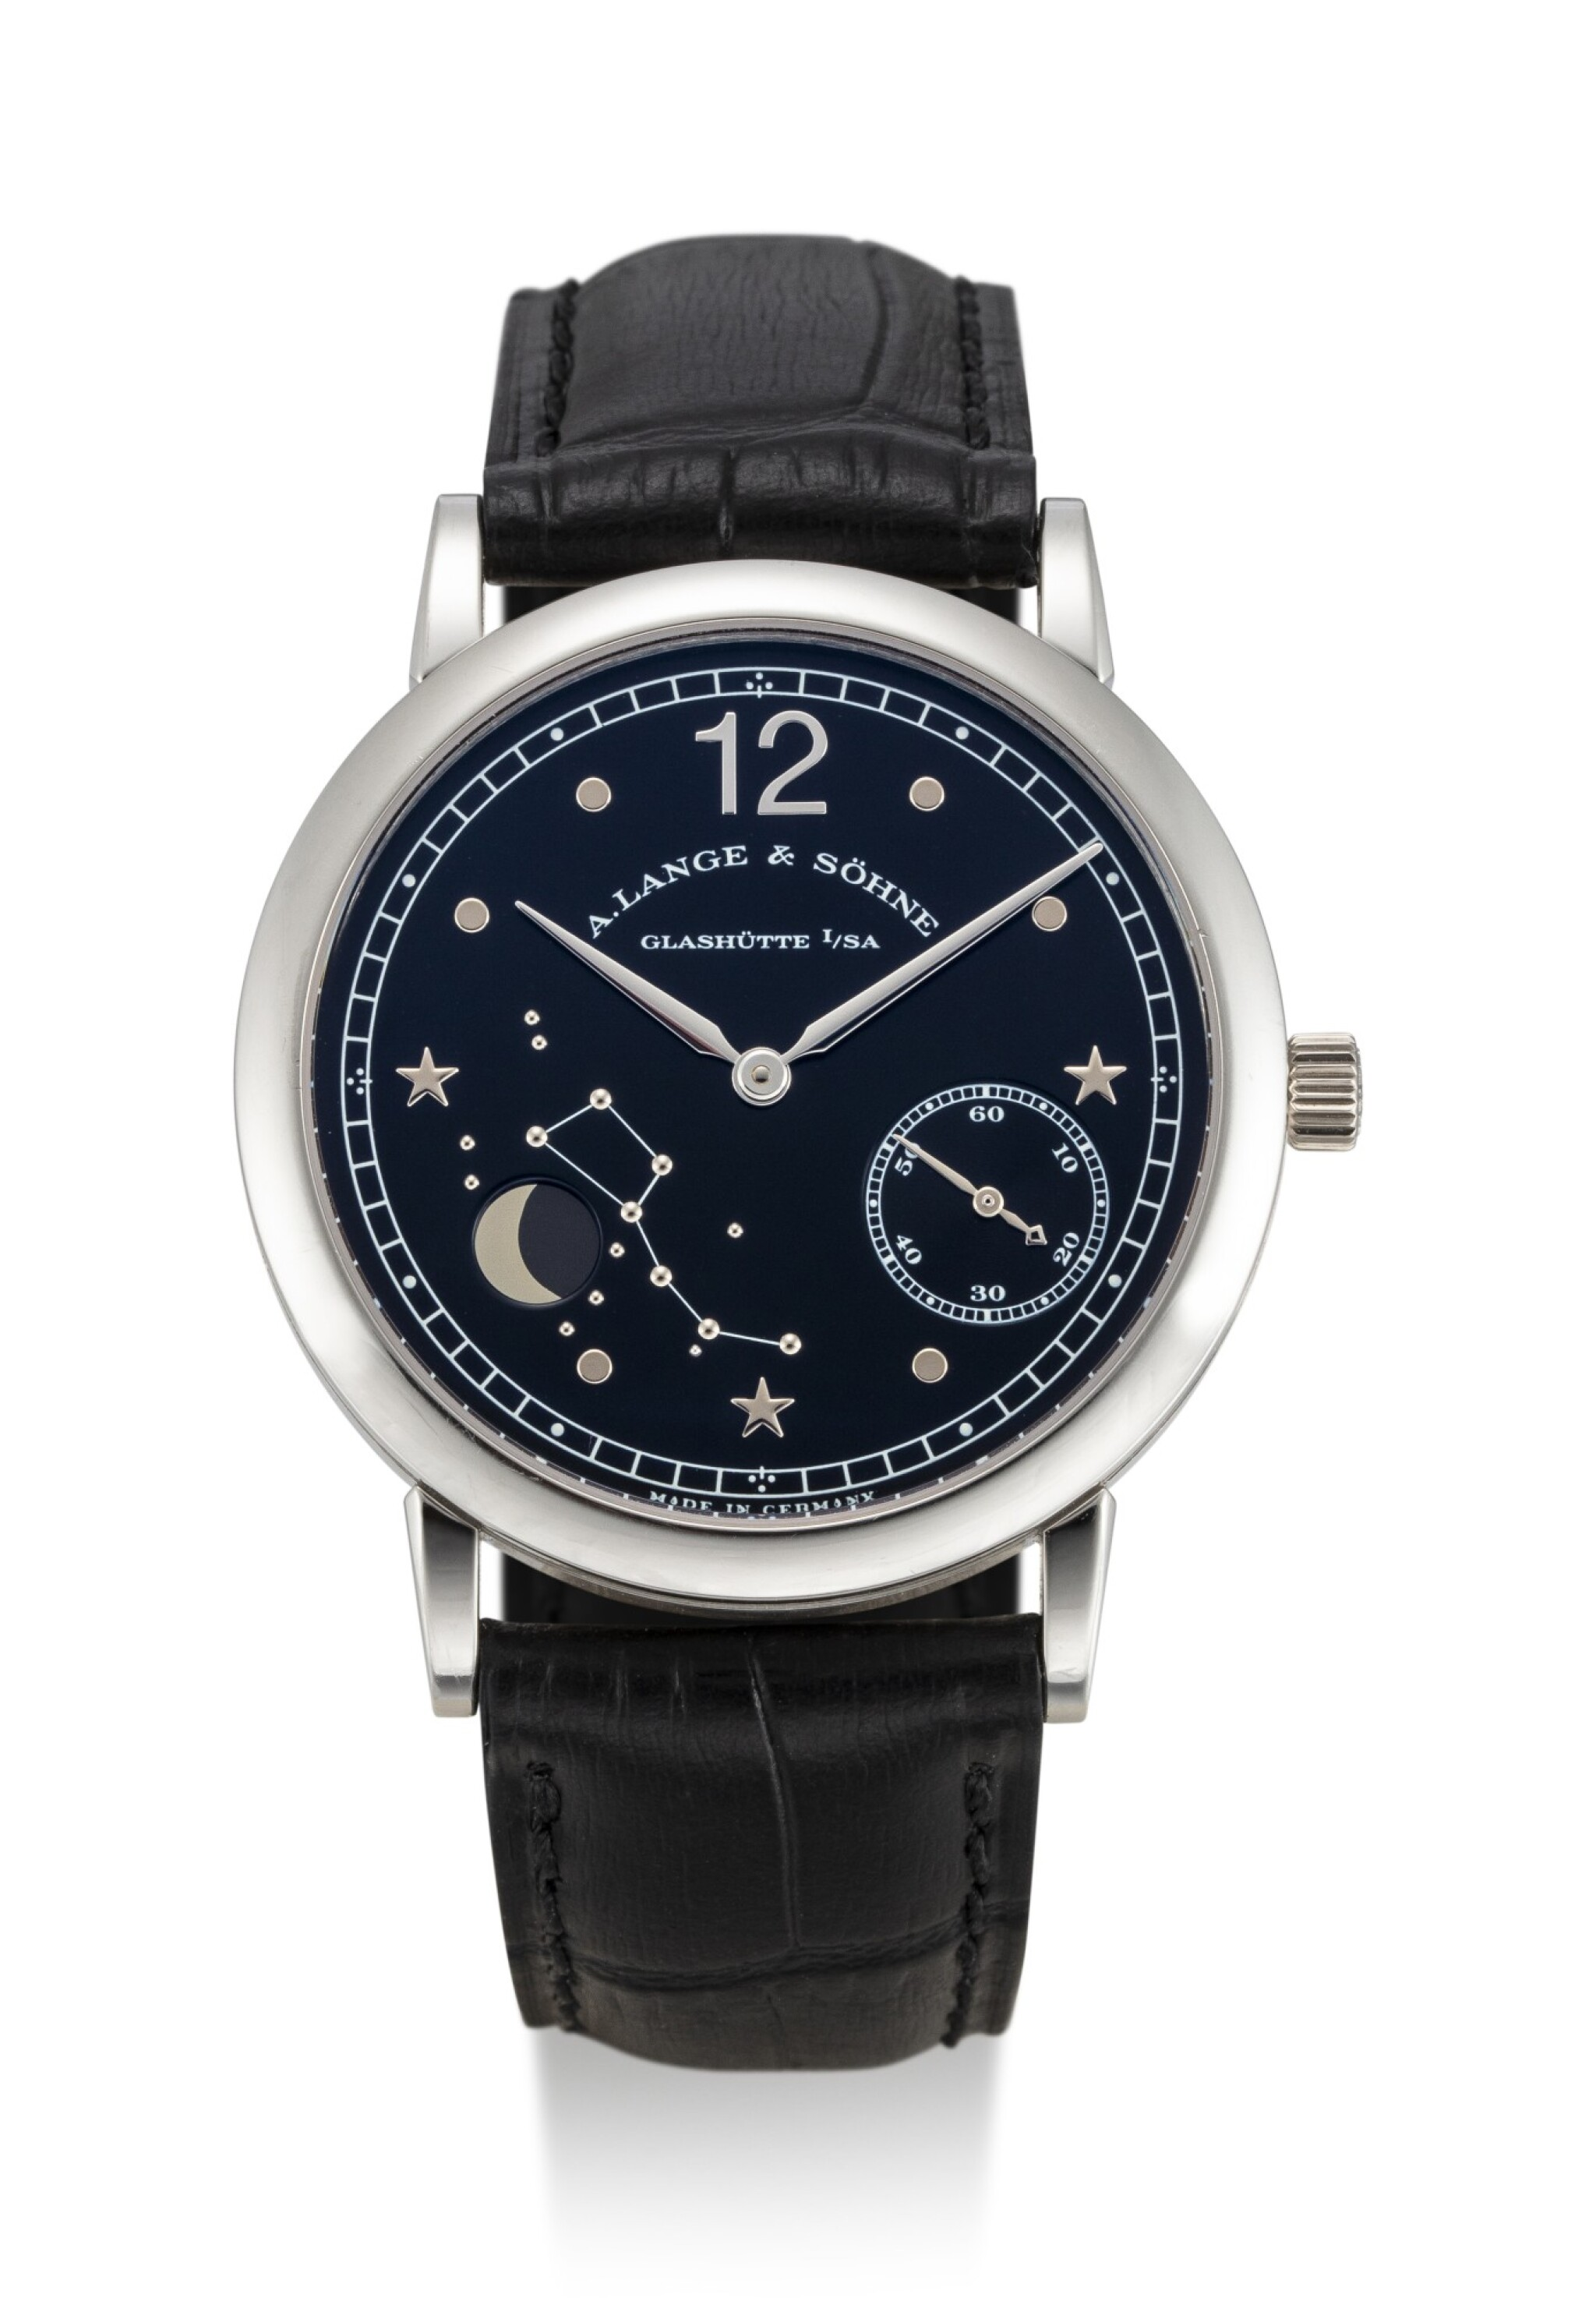 View full screen - View 1 of Lot 63. A. LANGE & SÖHNE | 1815 MOON PHASE, REFERENCE 231.035, A LIMITED EDITION PLATINUM ASTRONOMICAL WRISTWATCH WITH MOON PHASES, MADE TO COMMEMORATE THE 150TH ANNIVERSARY OF EMIL LANGE'S BIRTH, CIRCA 1999.